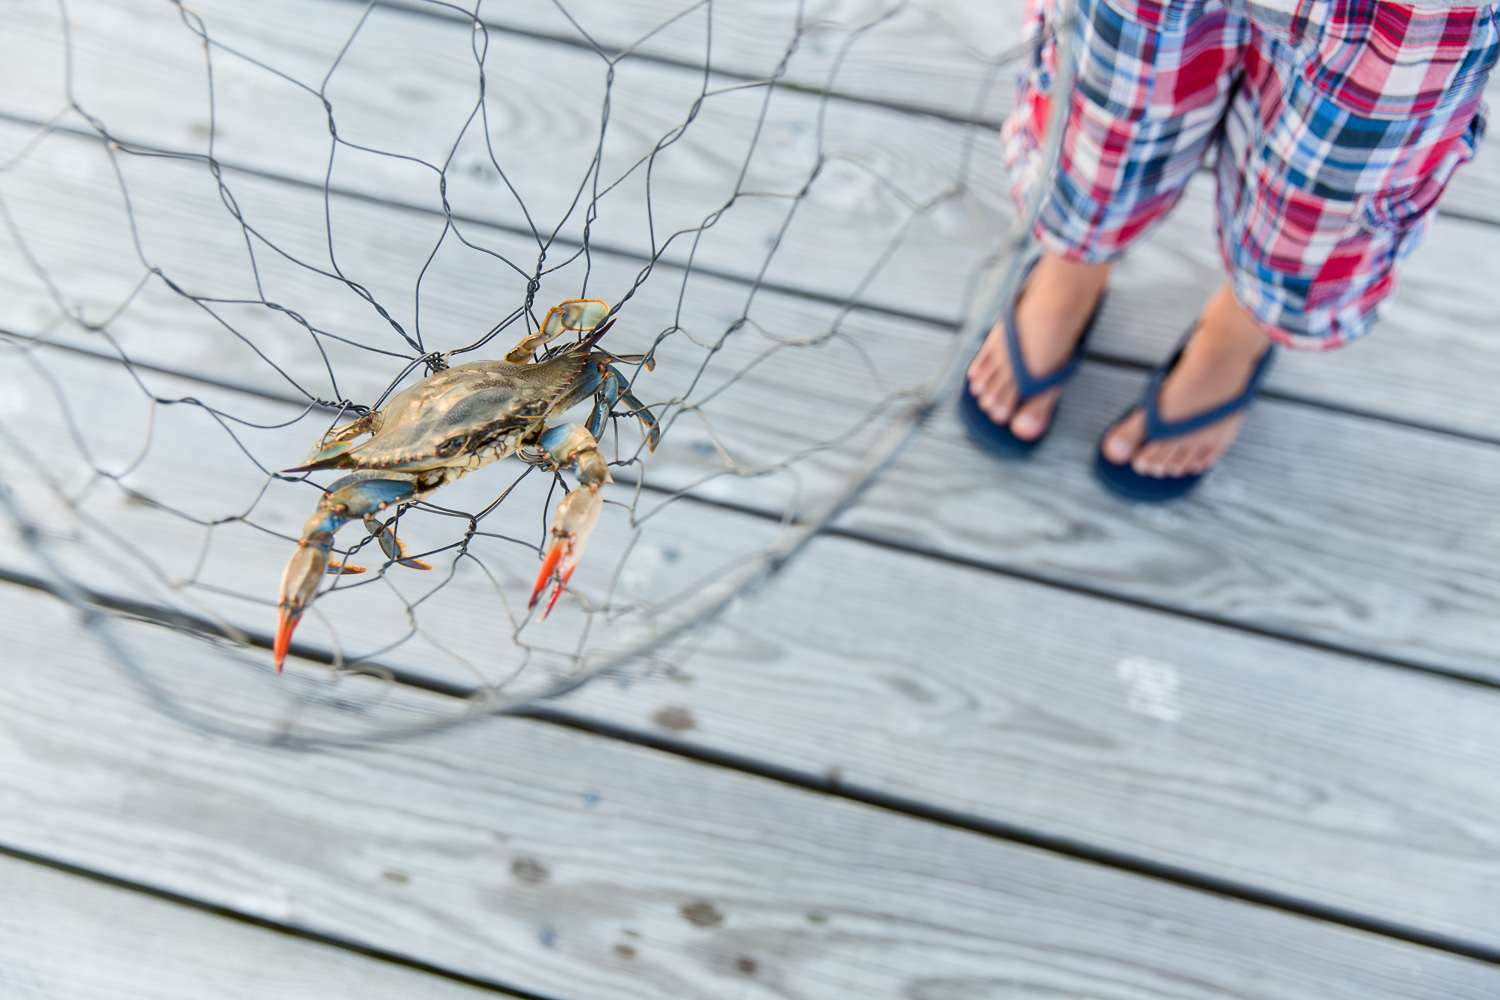 A little boy catches a Maryland Blue Crab in Rock Hall, Maryland